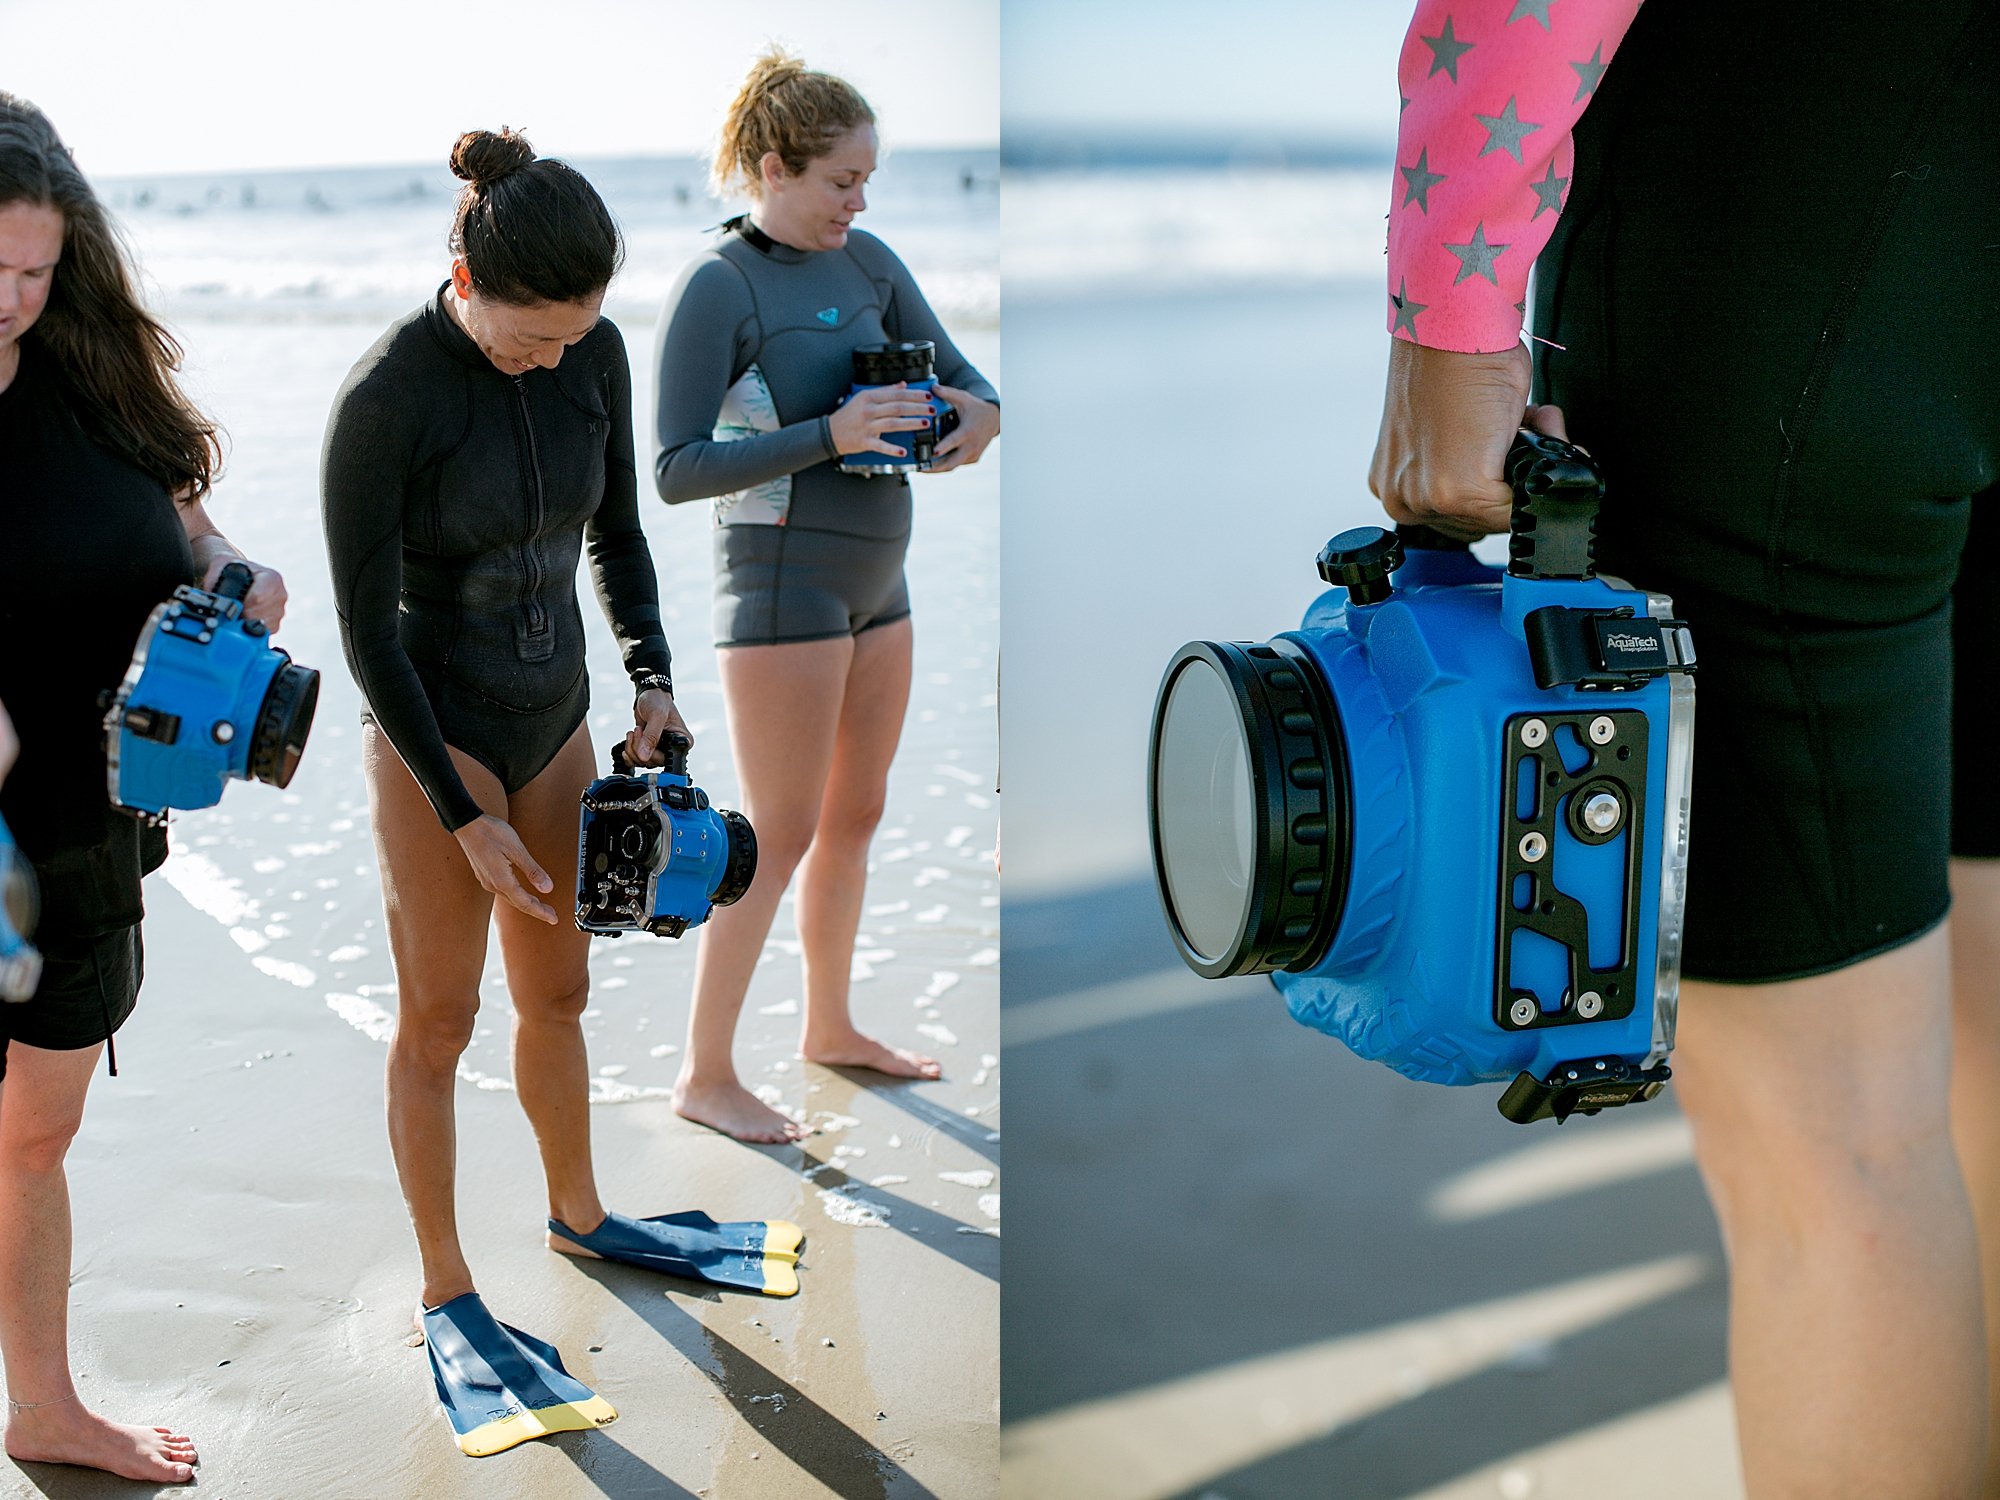 Women's Surf Film Festival - Women's Surf Photography Workshop by Bryanna Bradley - Photographer Kelee Bovelle @keleeb_0018.jpg